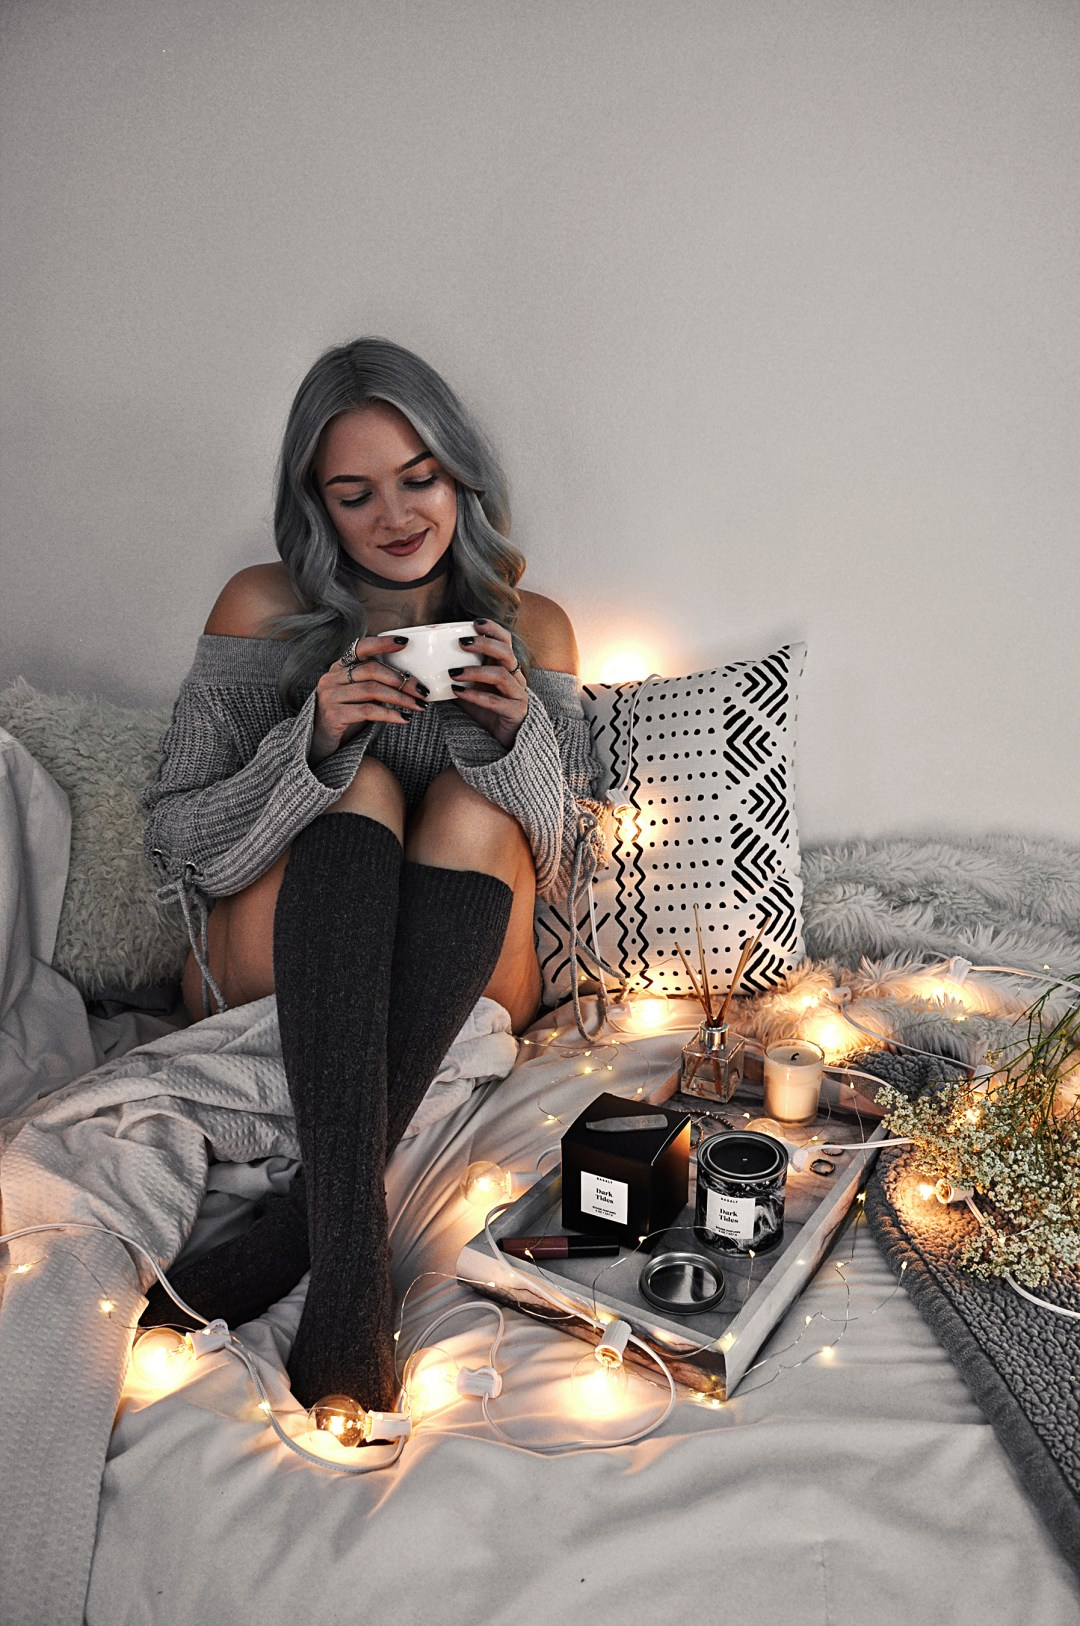 It's busy season! Christmas and New Years aren't far away, and that's why I always do these 7 things that help me relax and prepare for the holidays.